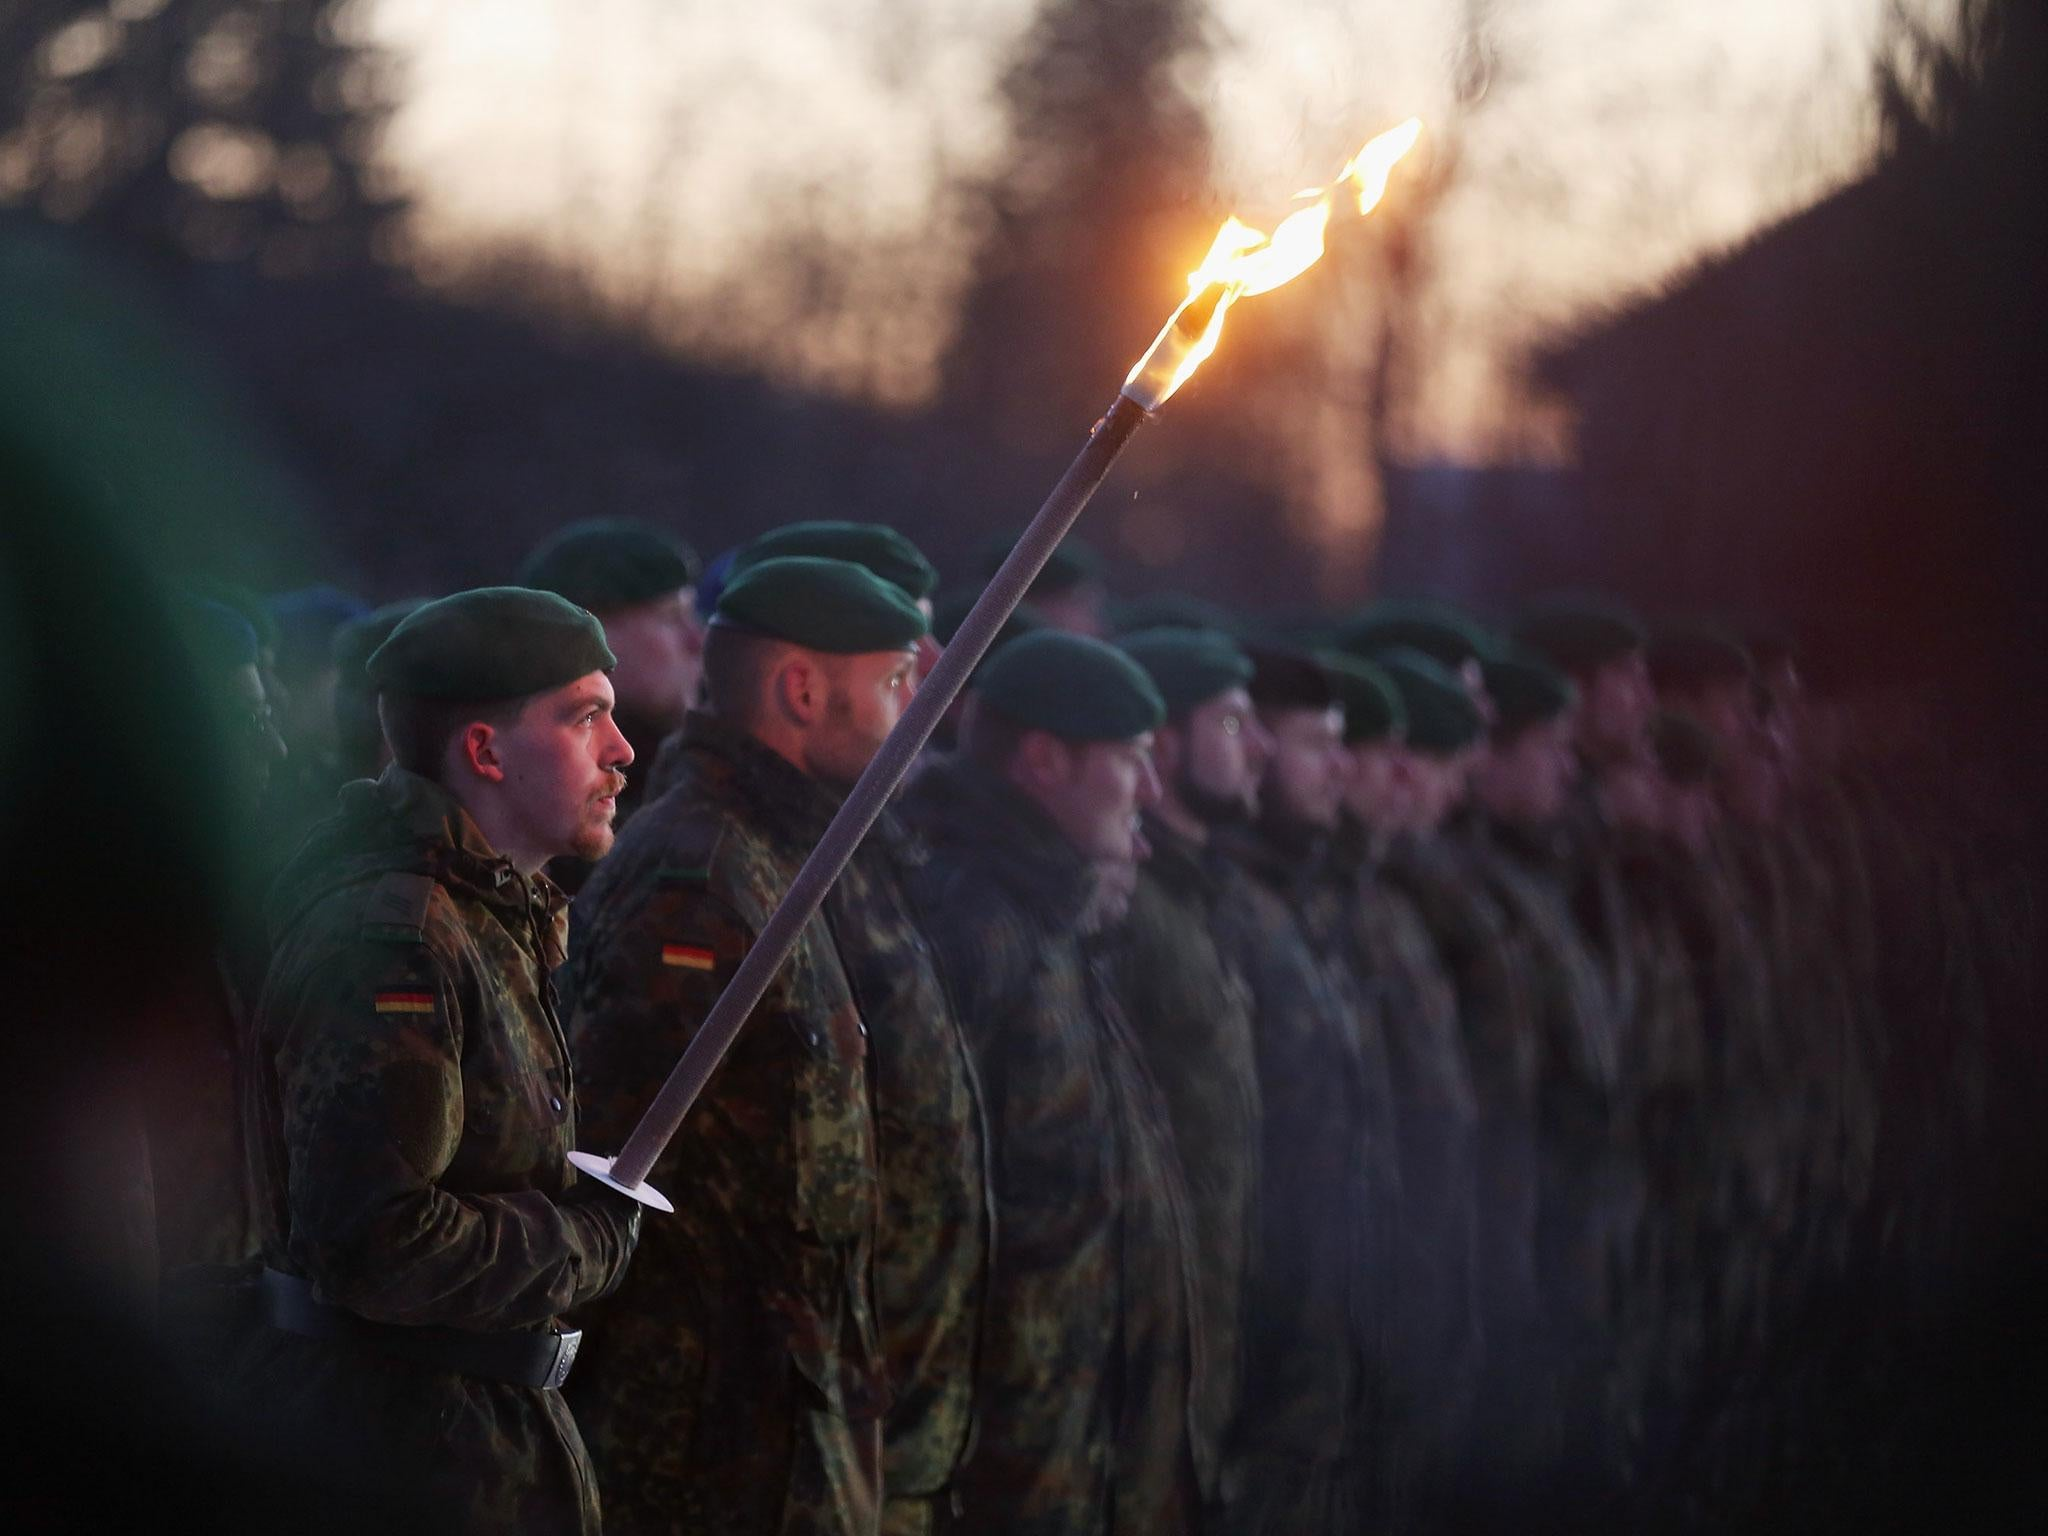 Army color casing ceremony script - German And Belgian Nato Troops Arrive In Lithuania Amid Growing Russia Security Fears The Independent